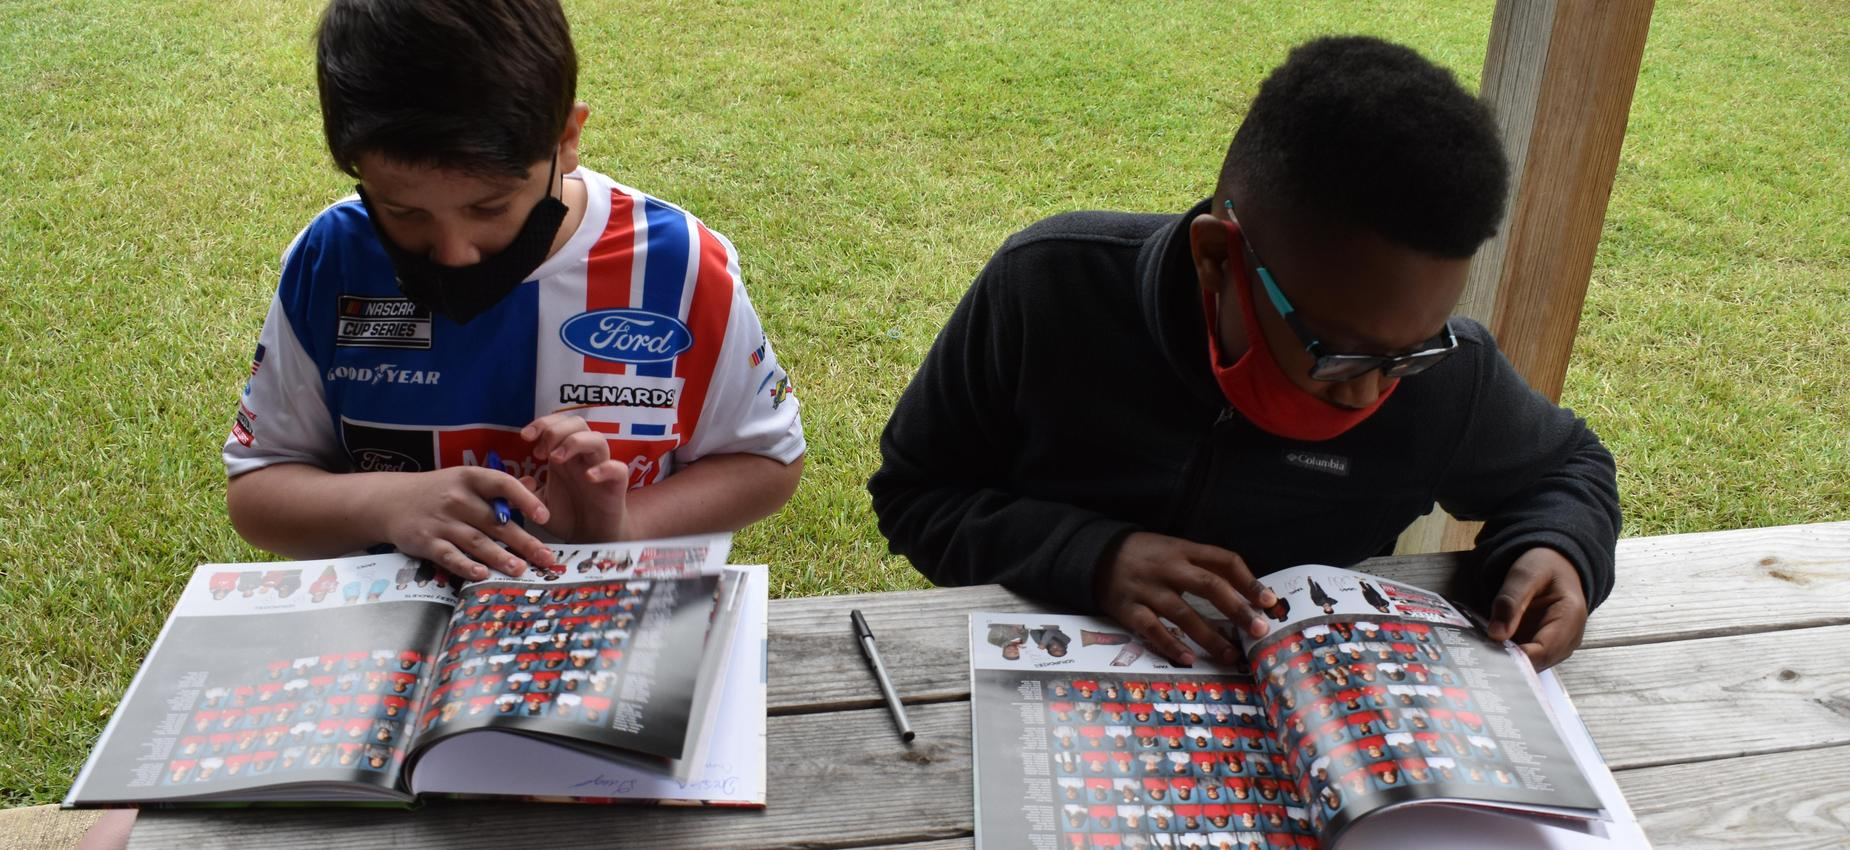 Students participating in Yearbook Signing Party.